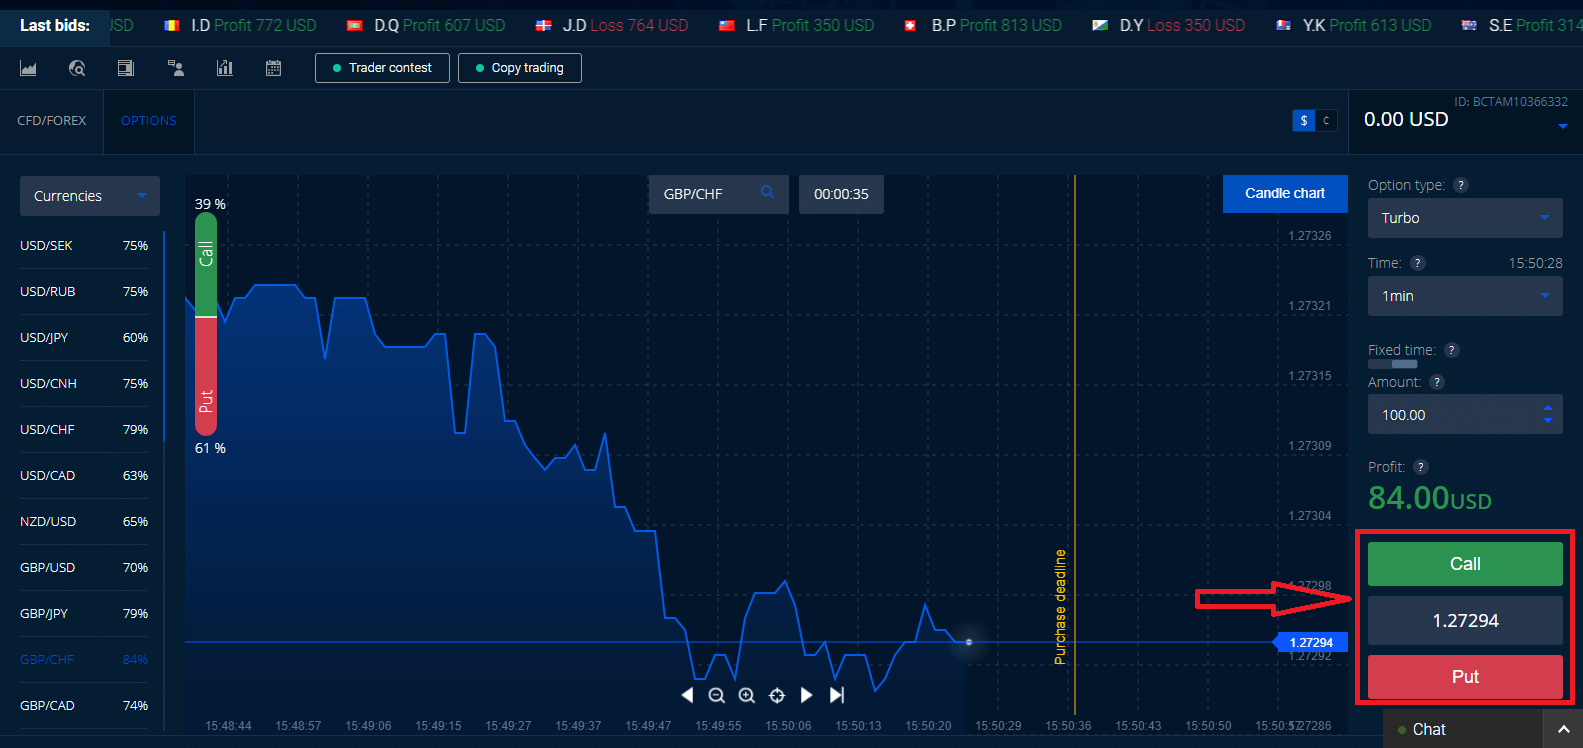 Frequently Asked Question (FAQ) of Trading in Binarycent